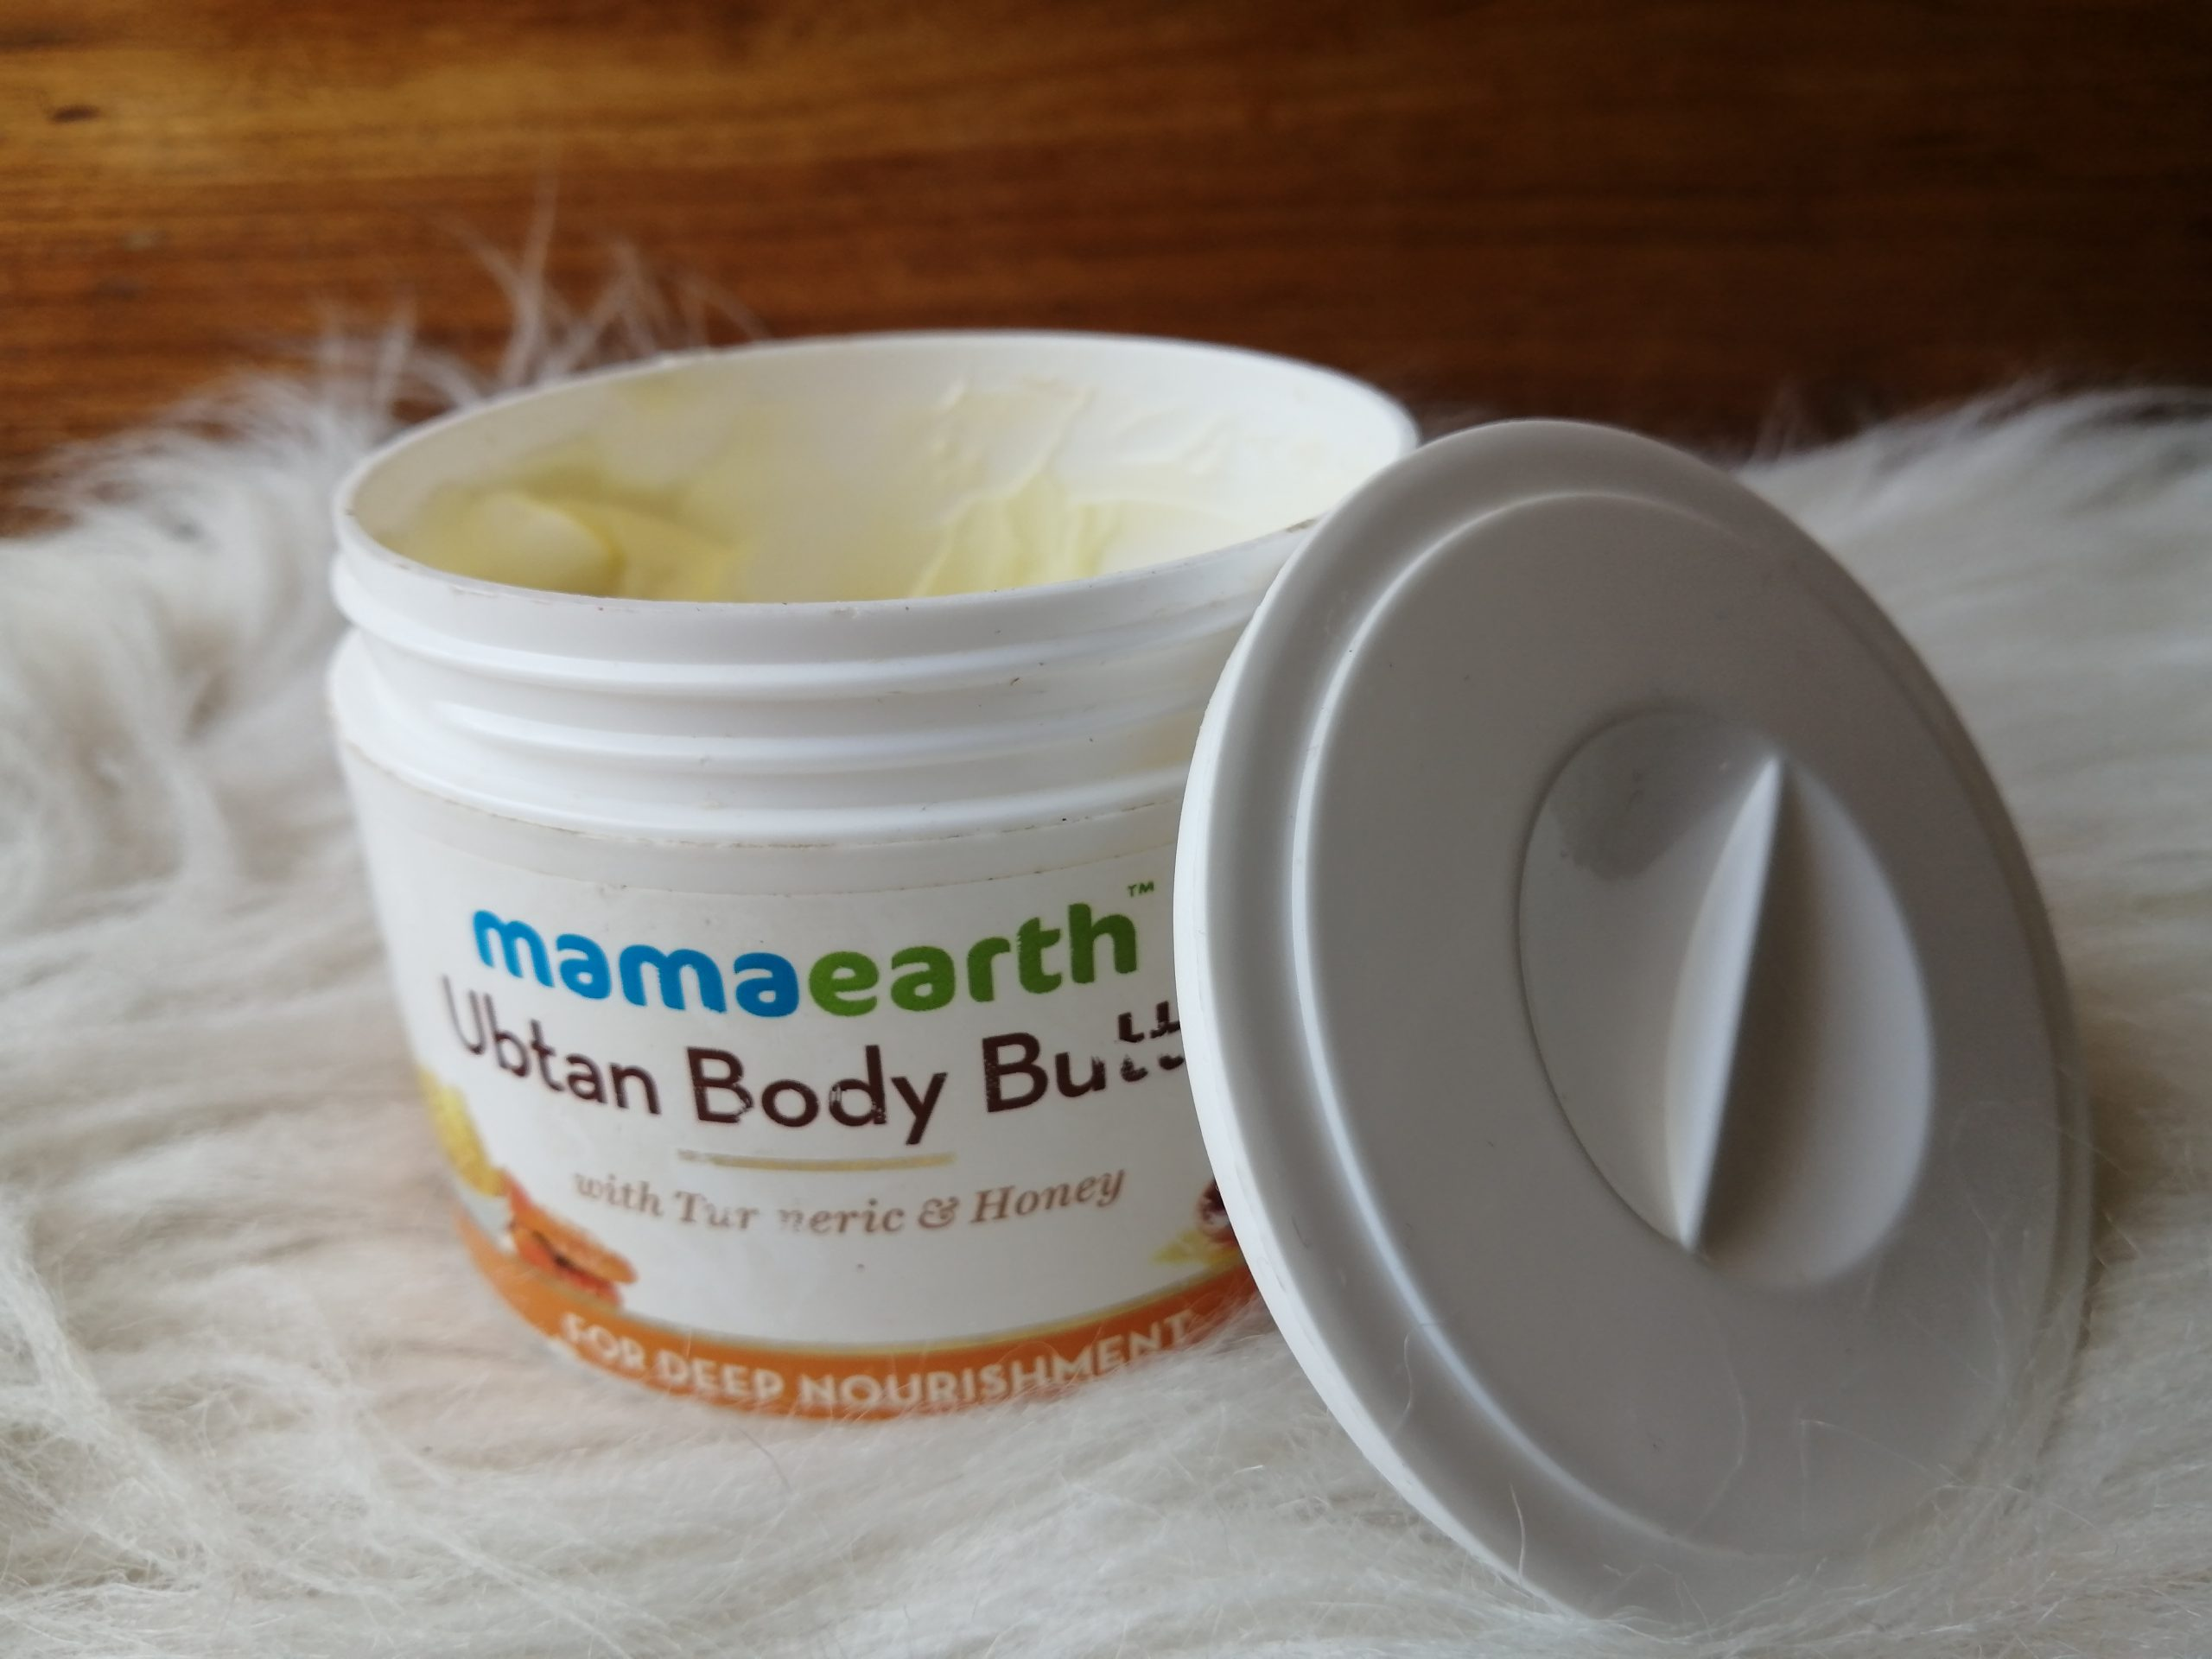 Mamaearth ubtan body butter.